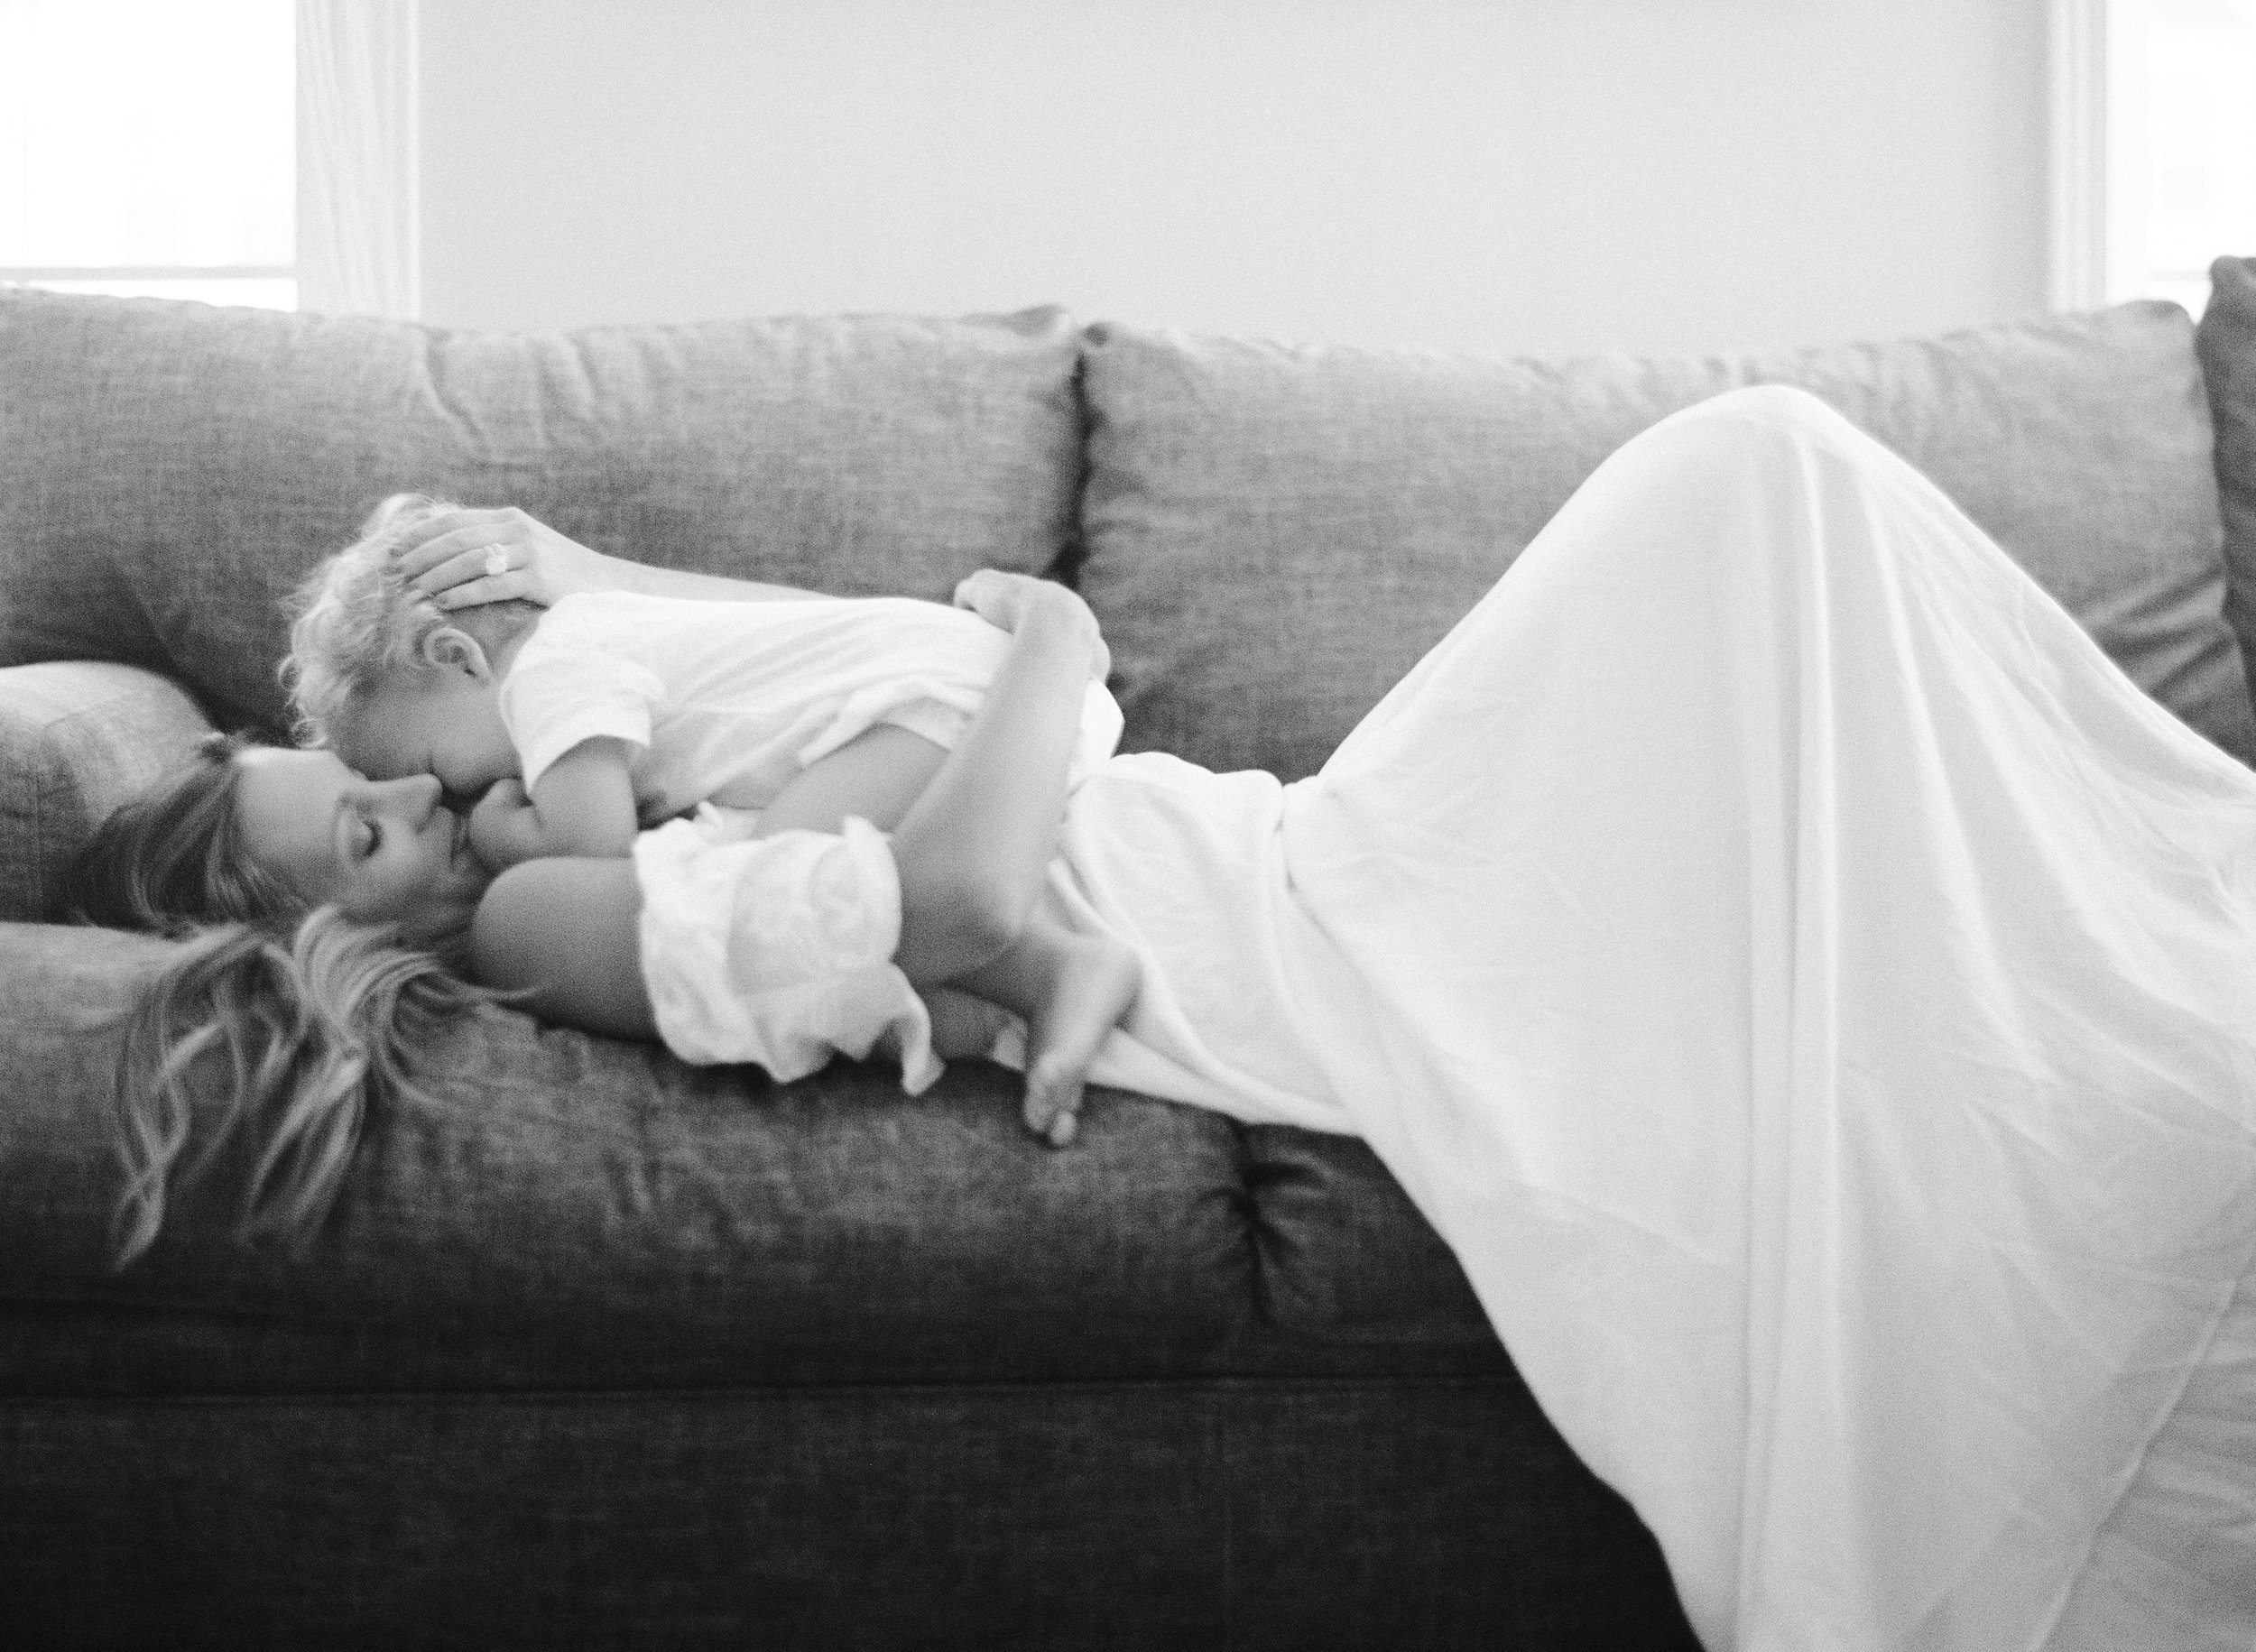 raleigh-lifestyle-family-baby-photographer-lifestyle-photography-008